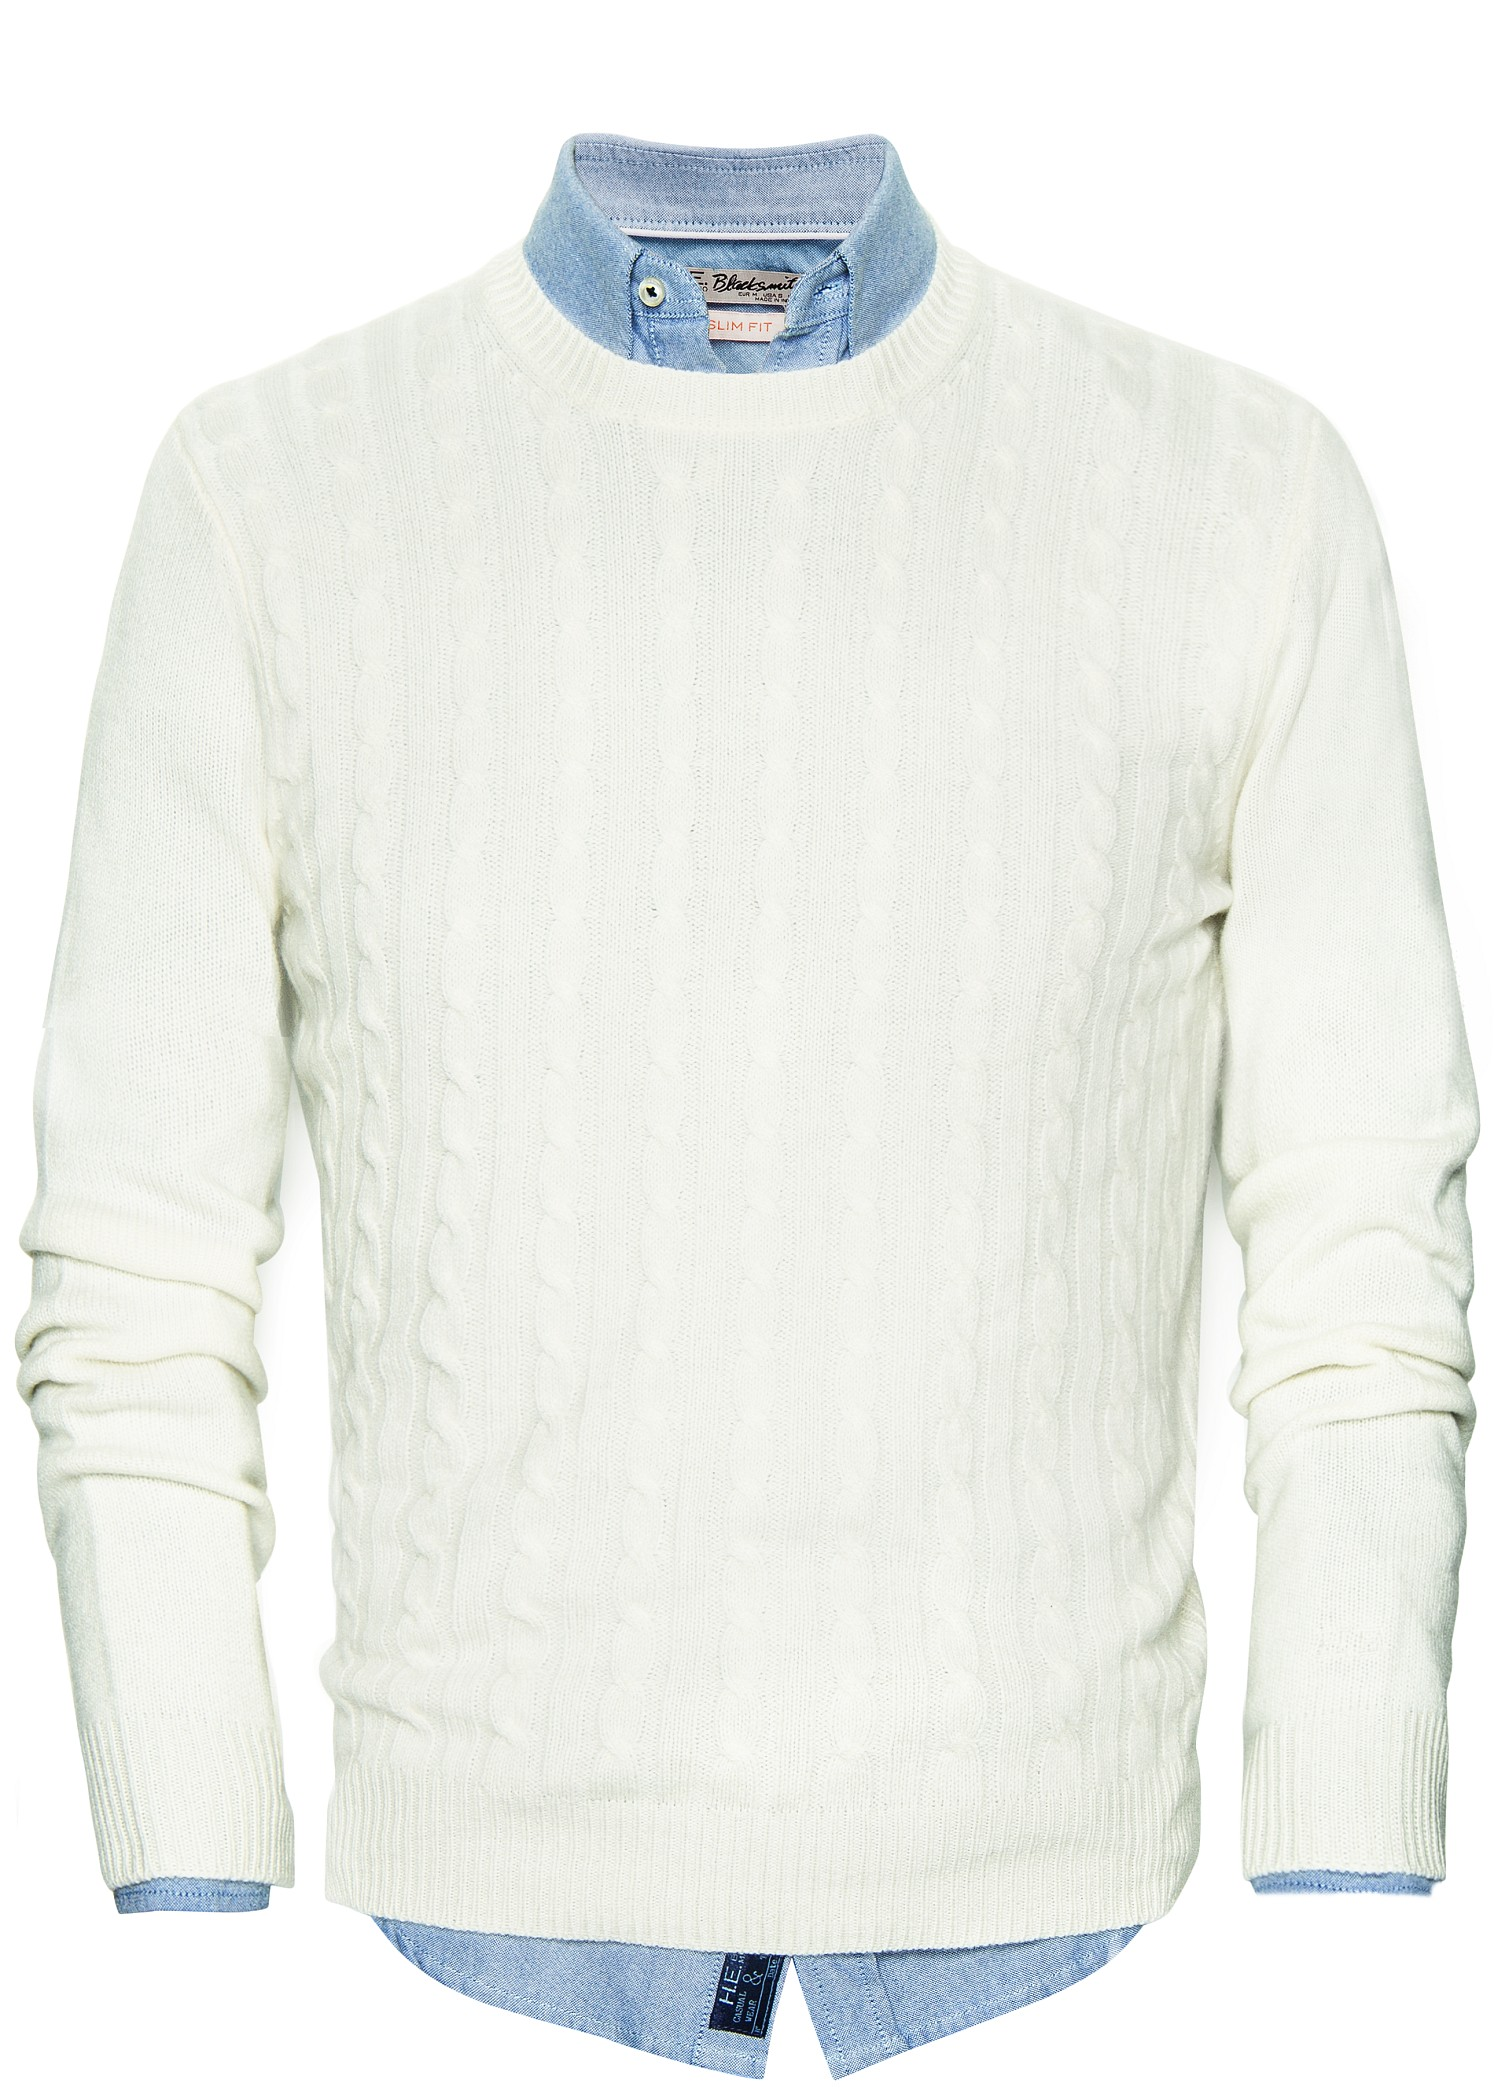 Lyst Mango Cableknit Cashmere Sweater In White For Men